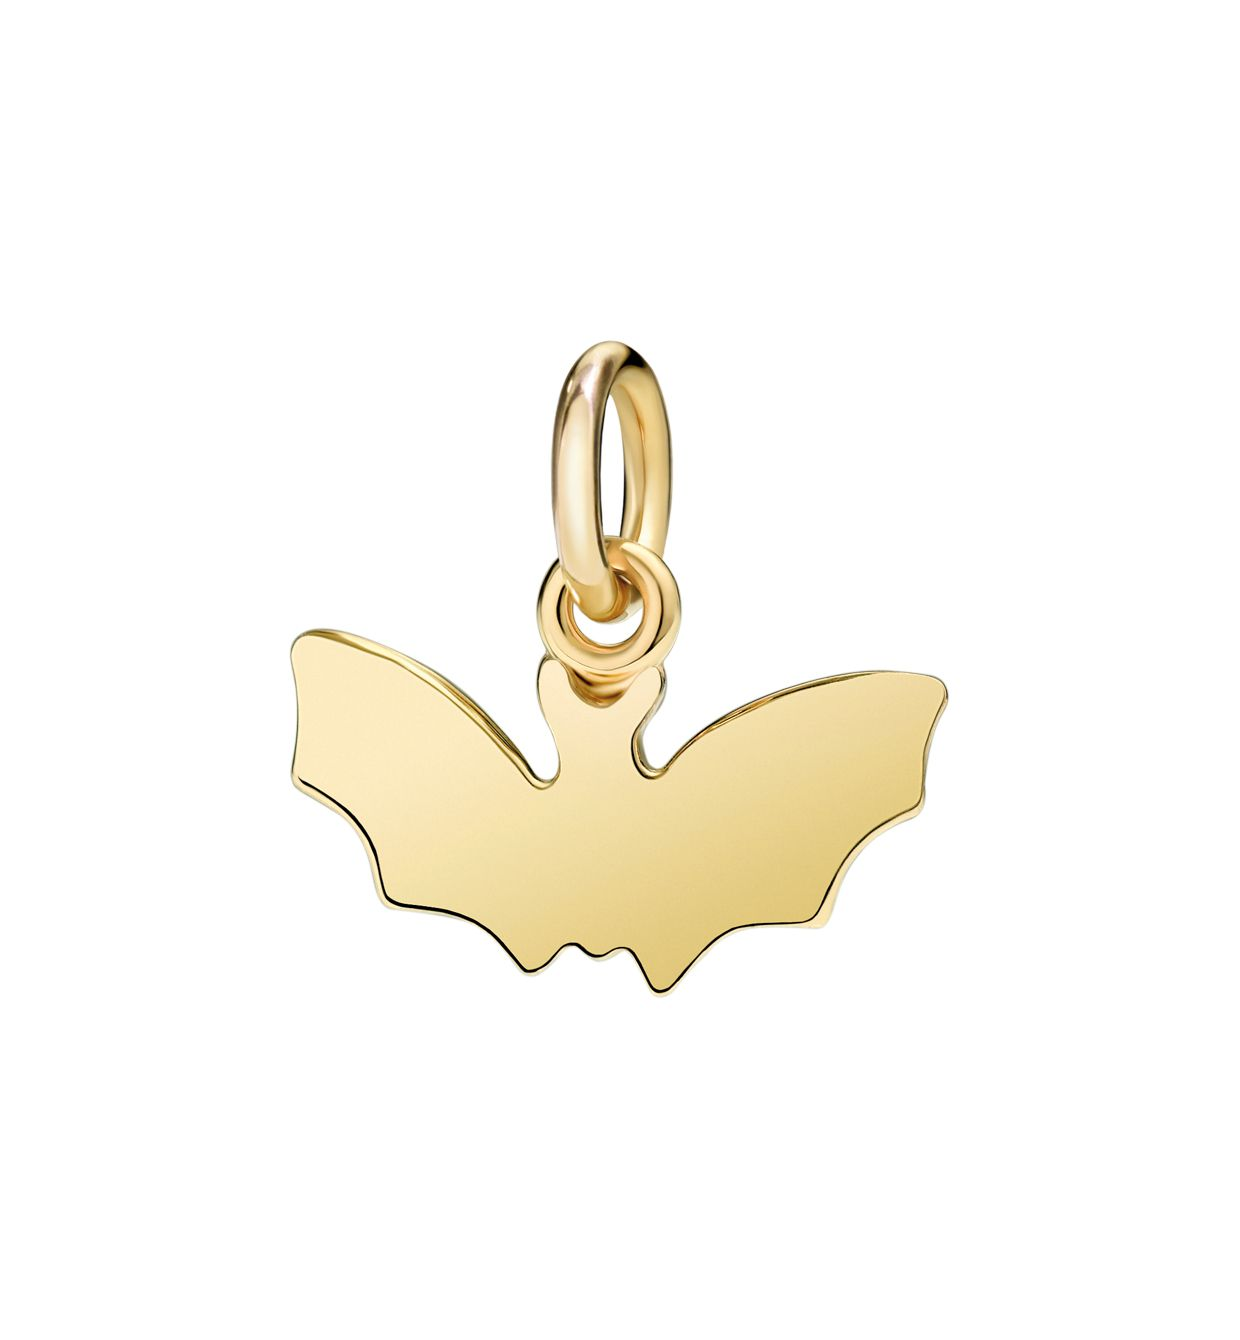 DoDo Bat in 18kt Yellow Gold - Orsini Jewellers NZ